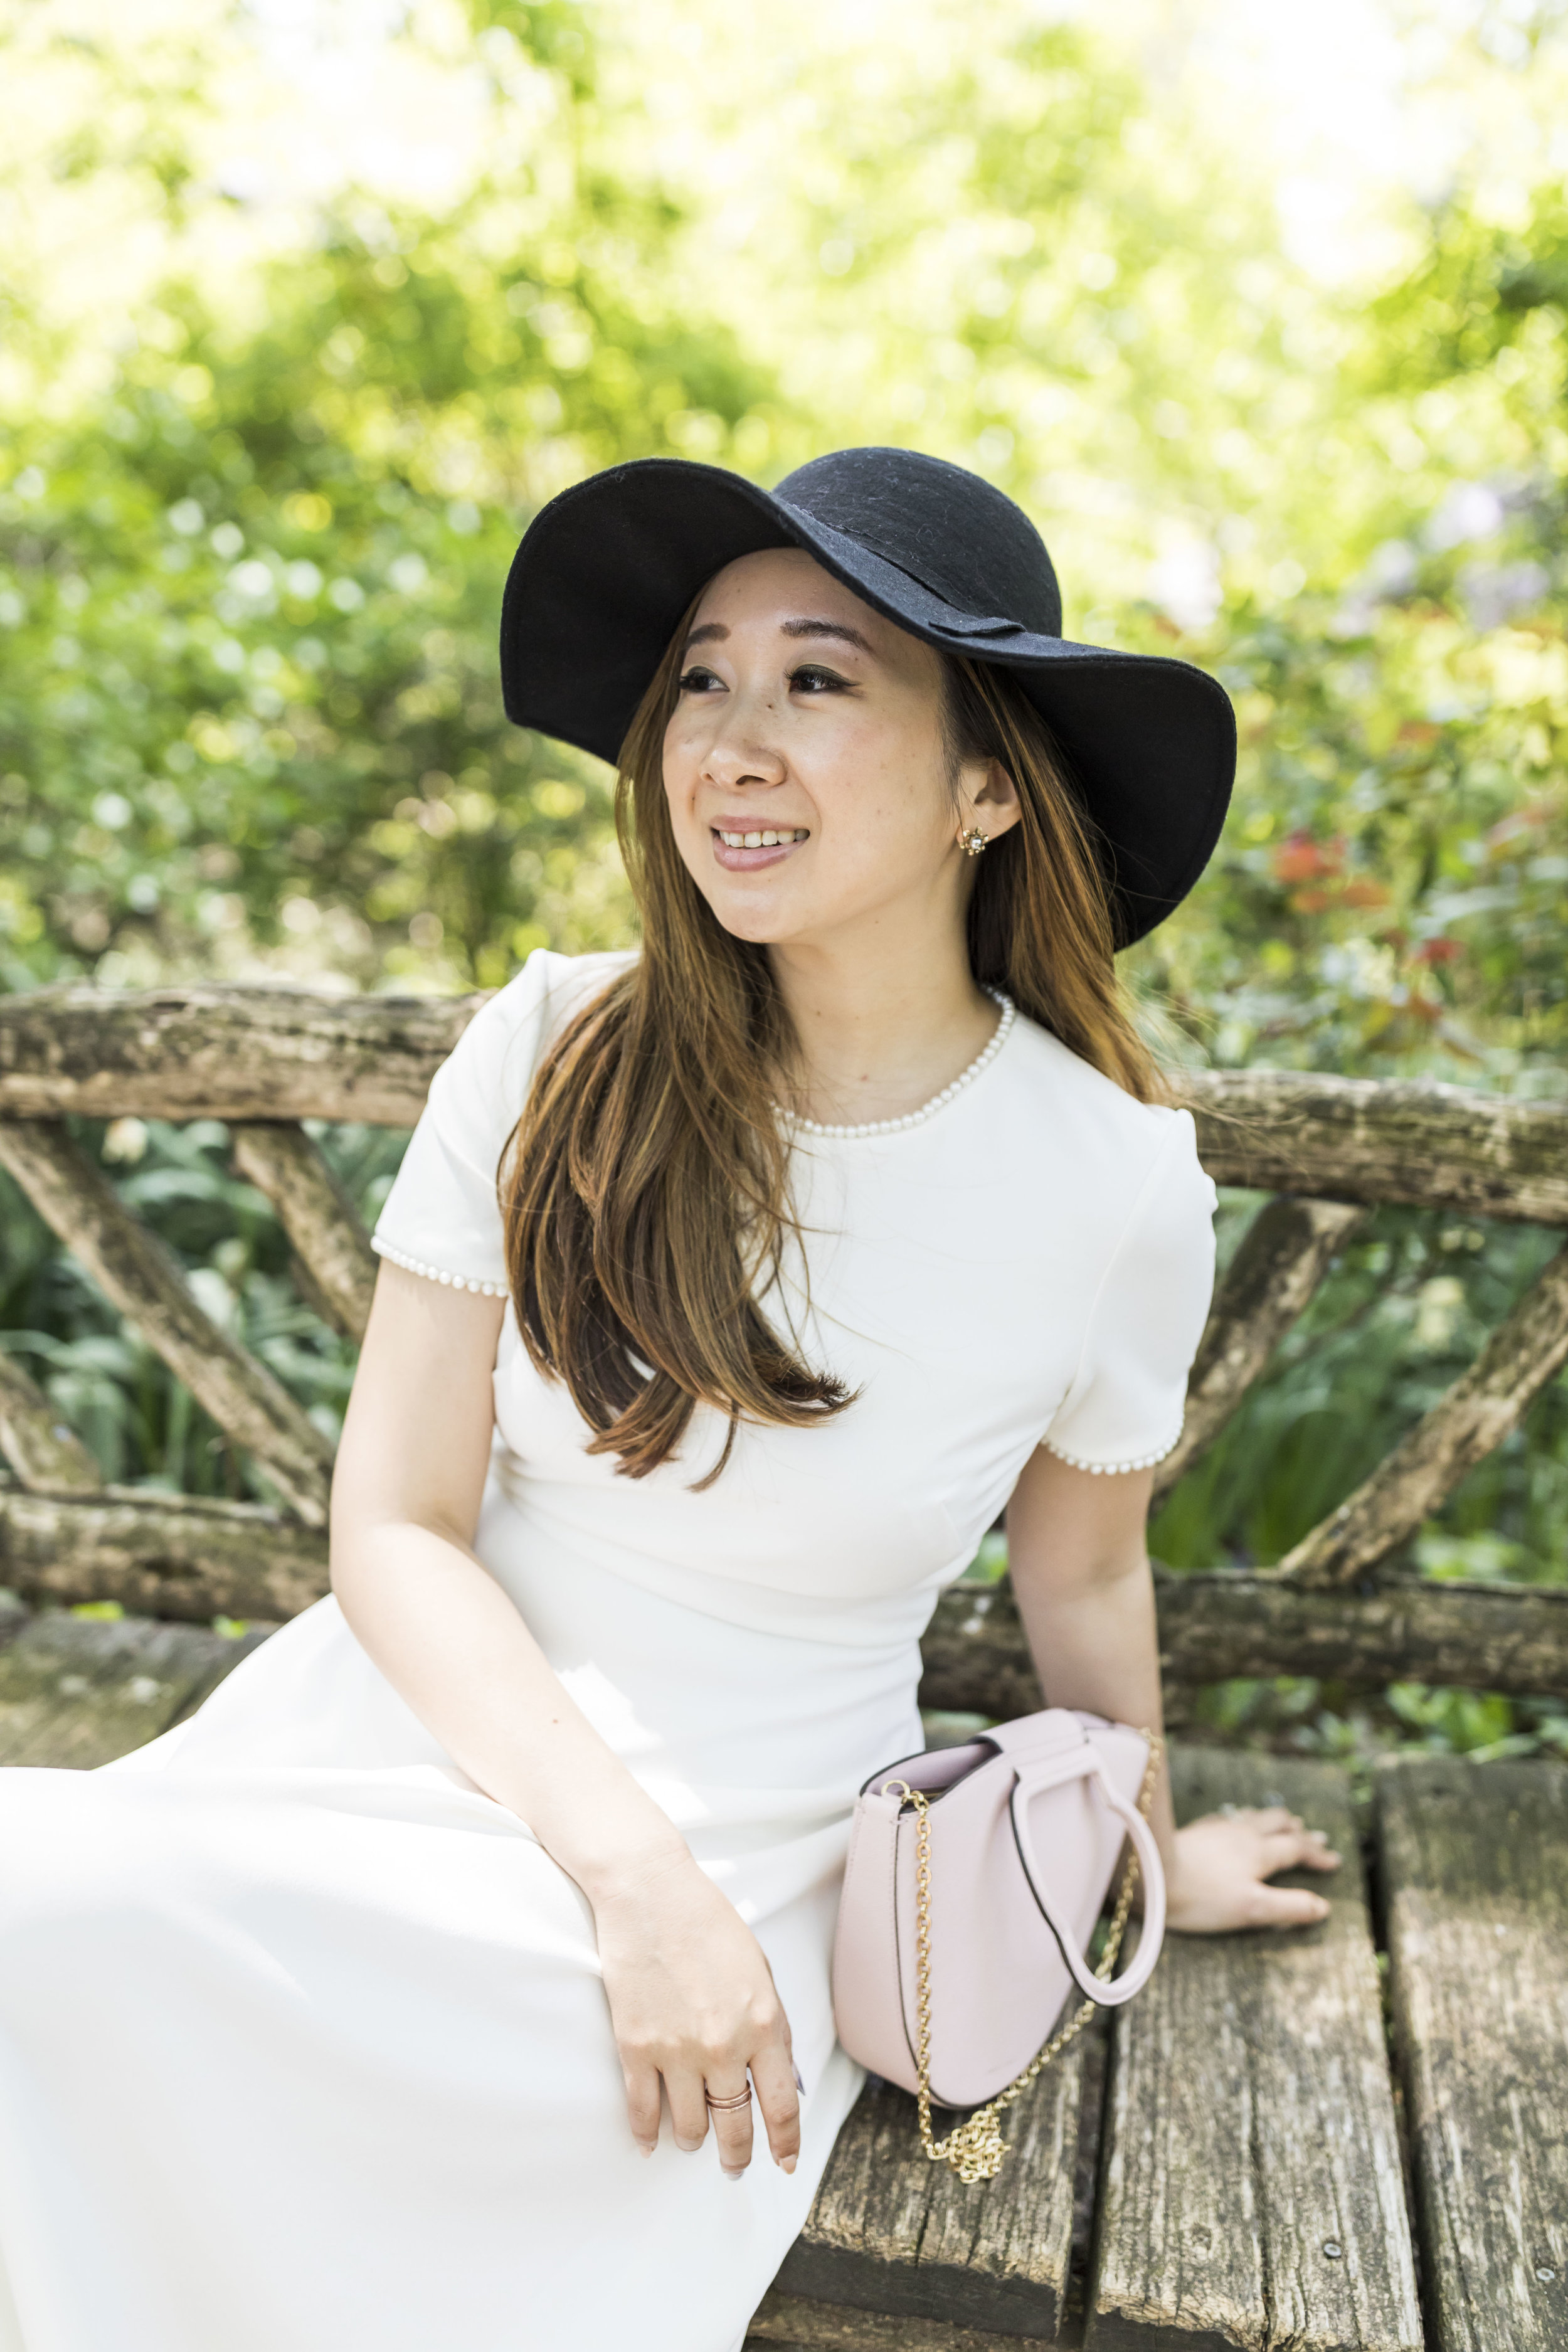 You can never go wrong with a simple black and white combination, #AmIRight?This white dress is a classic and in one of my favorite fit-and-flare styles.  Hat: Asos (Similar  here ); Dress:  Gal Meets Glam ; Bag:  Danse Lente .